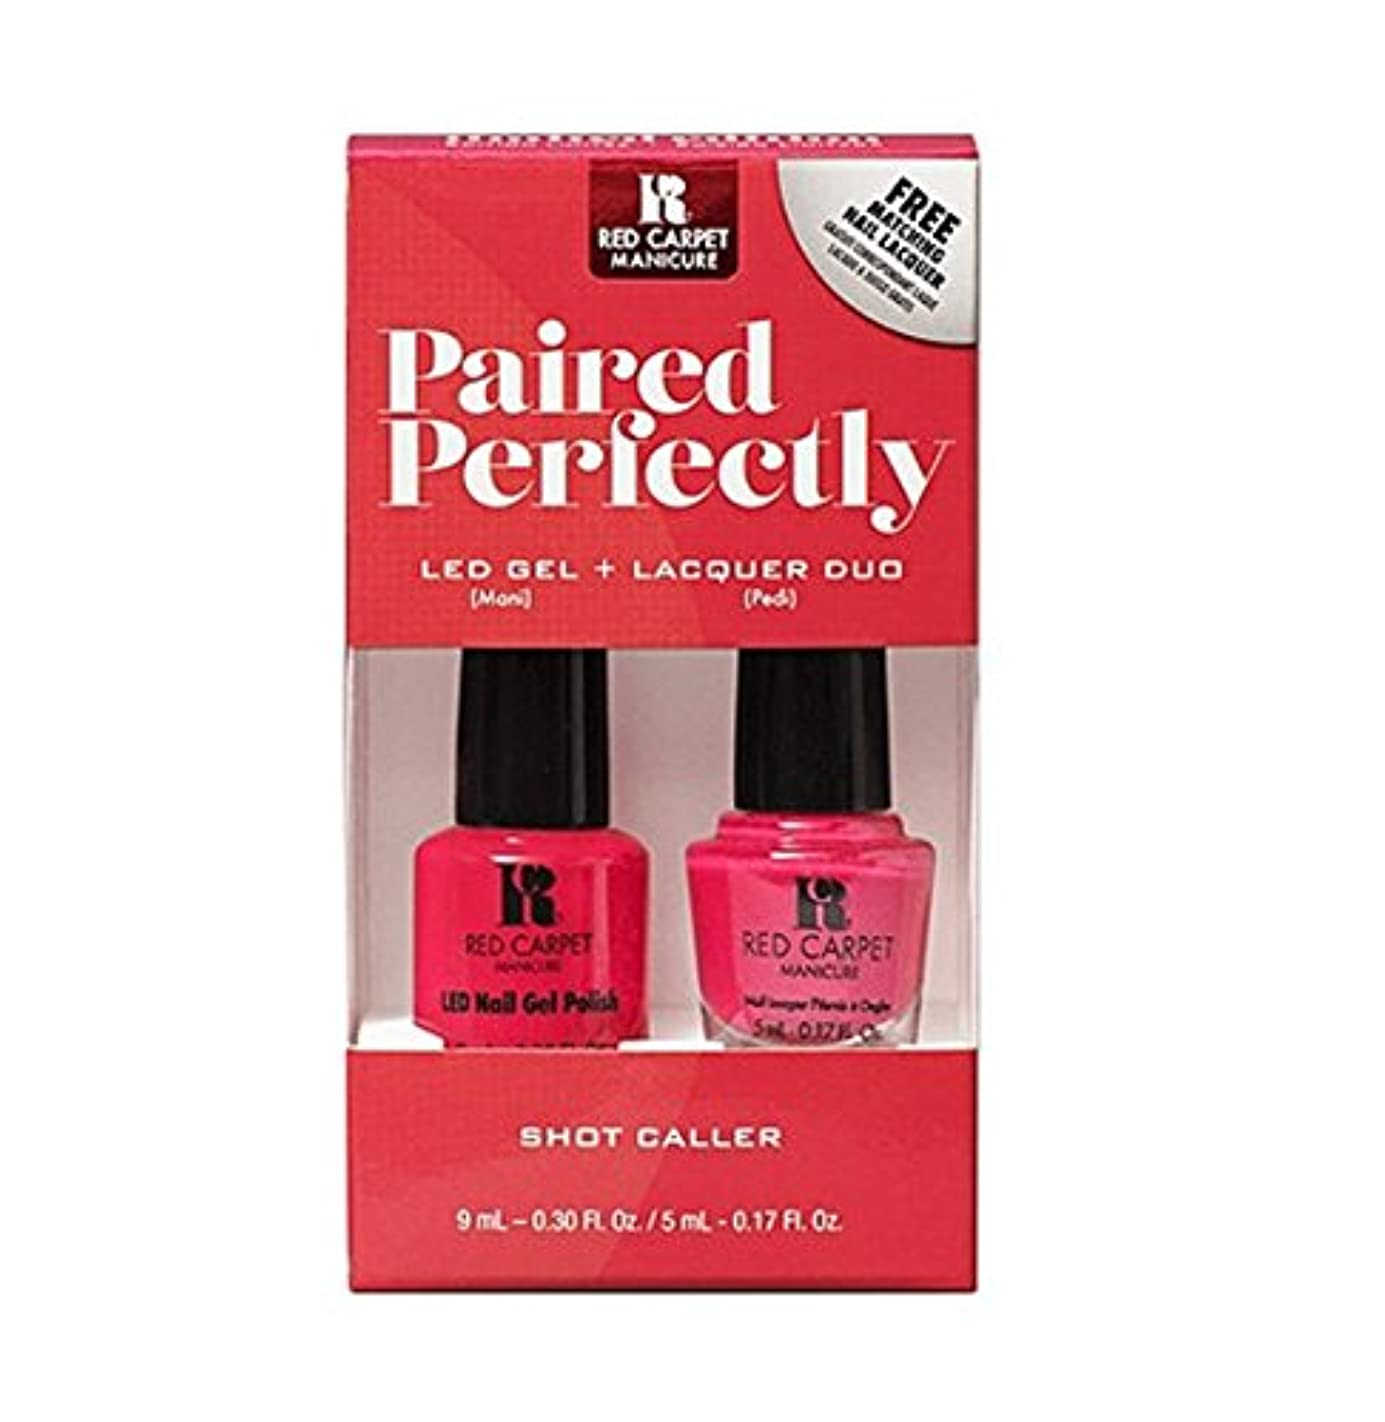 乗って拒絶一元化するRed Carpet Manicure - Paired Perfectly GEL & Lacquer DUO - Shot Caller